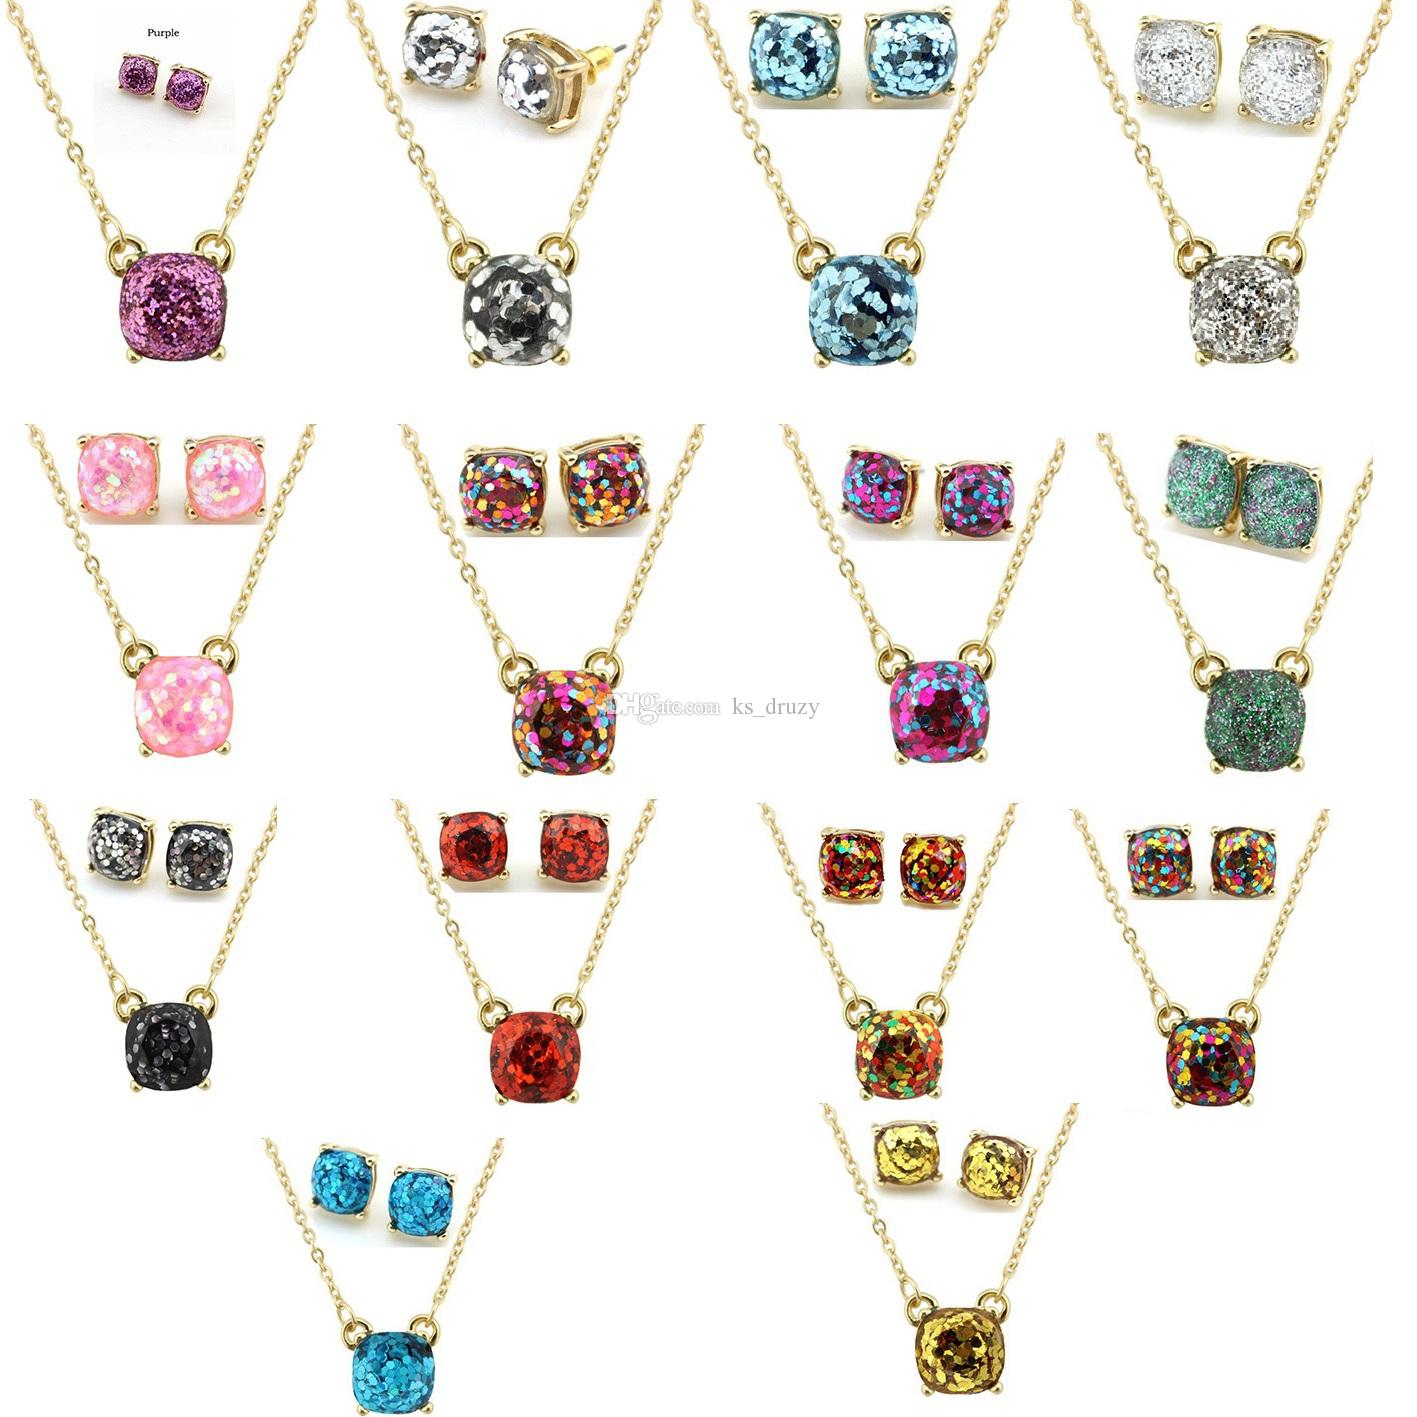 jewelry cheap pin suppliers wholesale manufacturers buy costume from fashion jewellery online supplies